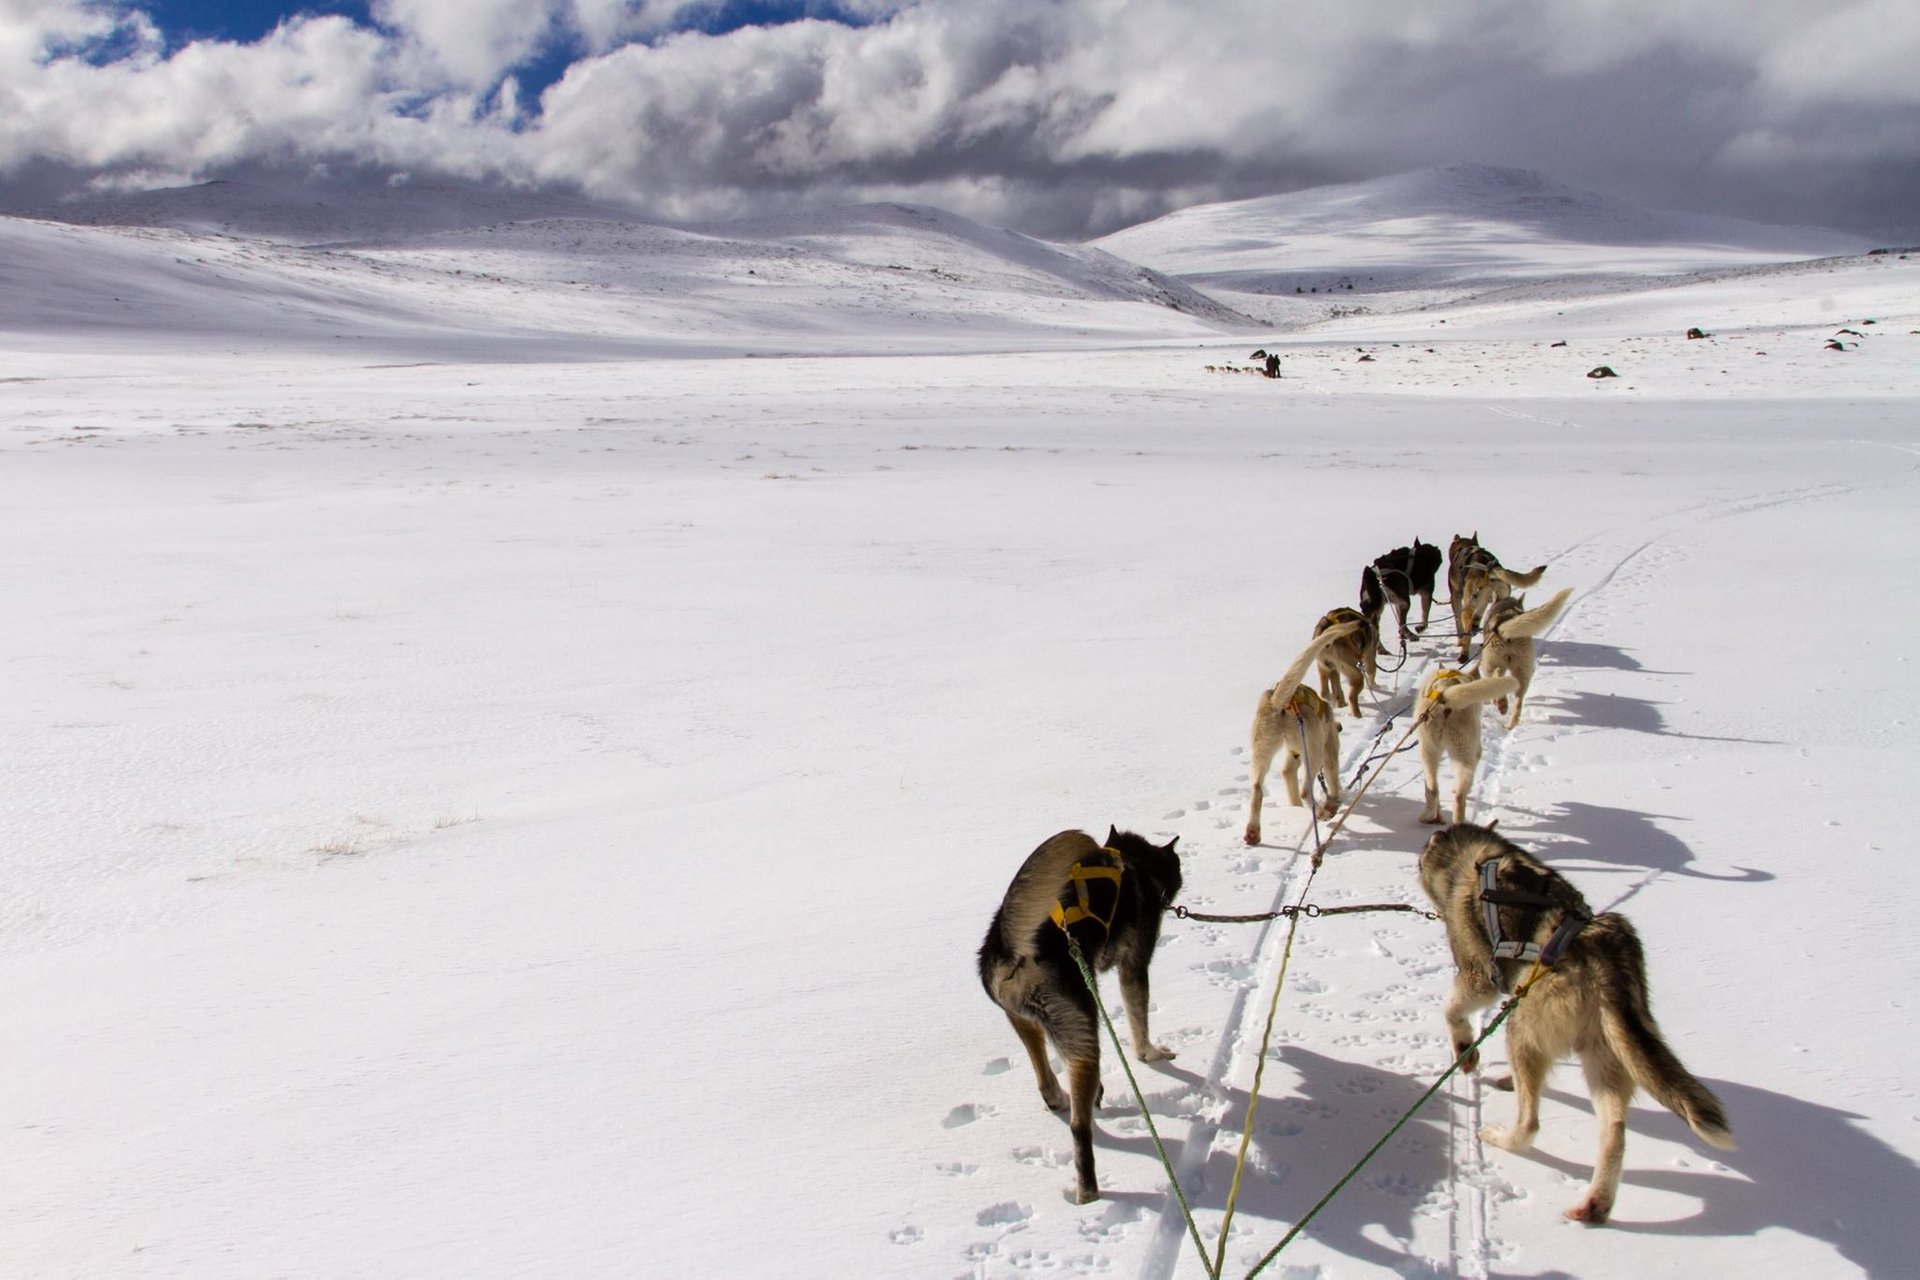 Dog Sledding in Patagonia 2020 - Best Time